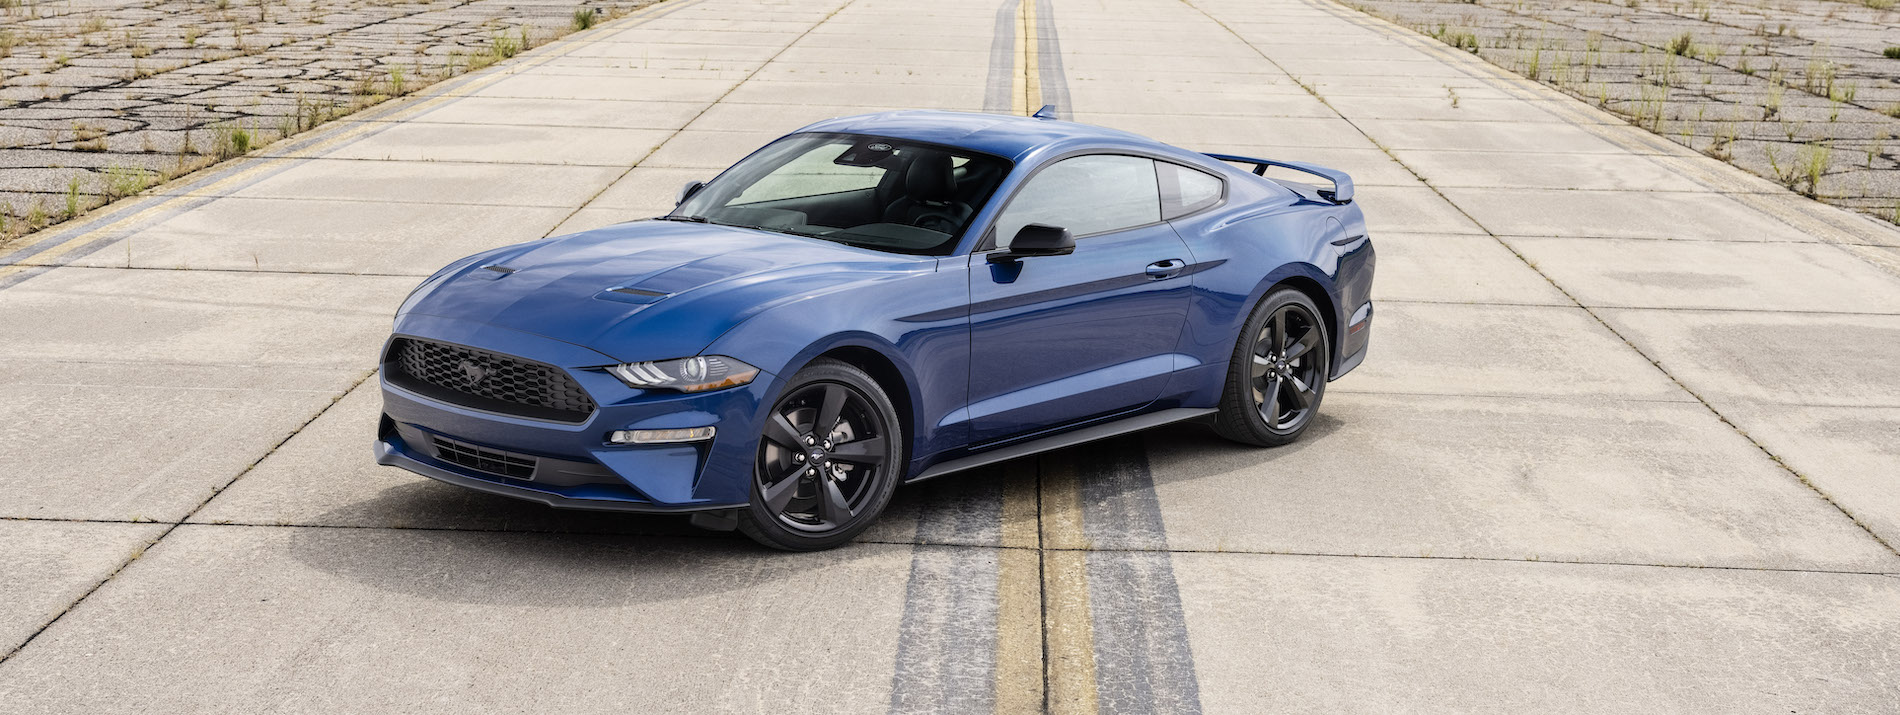 2022 Ford Mustang Stealth Edition_02.jpg